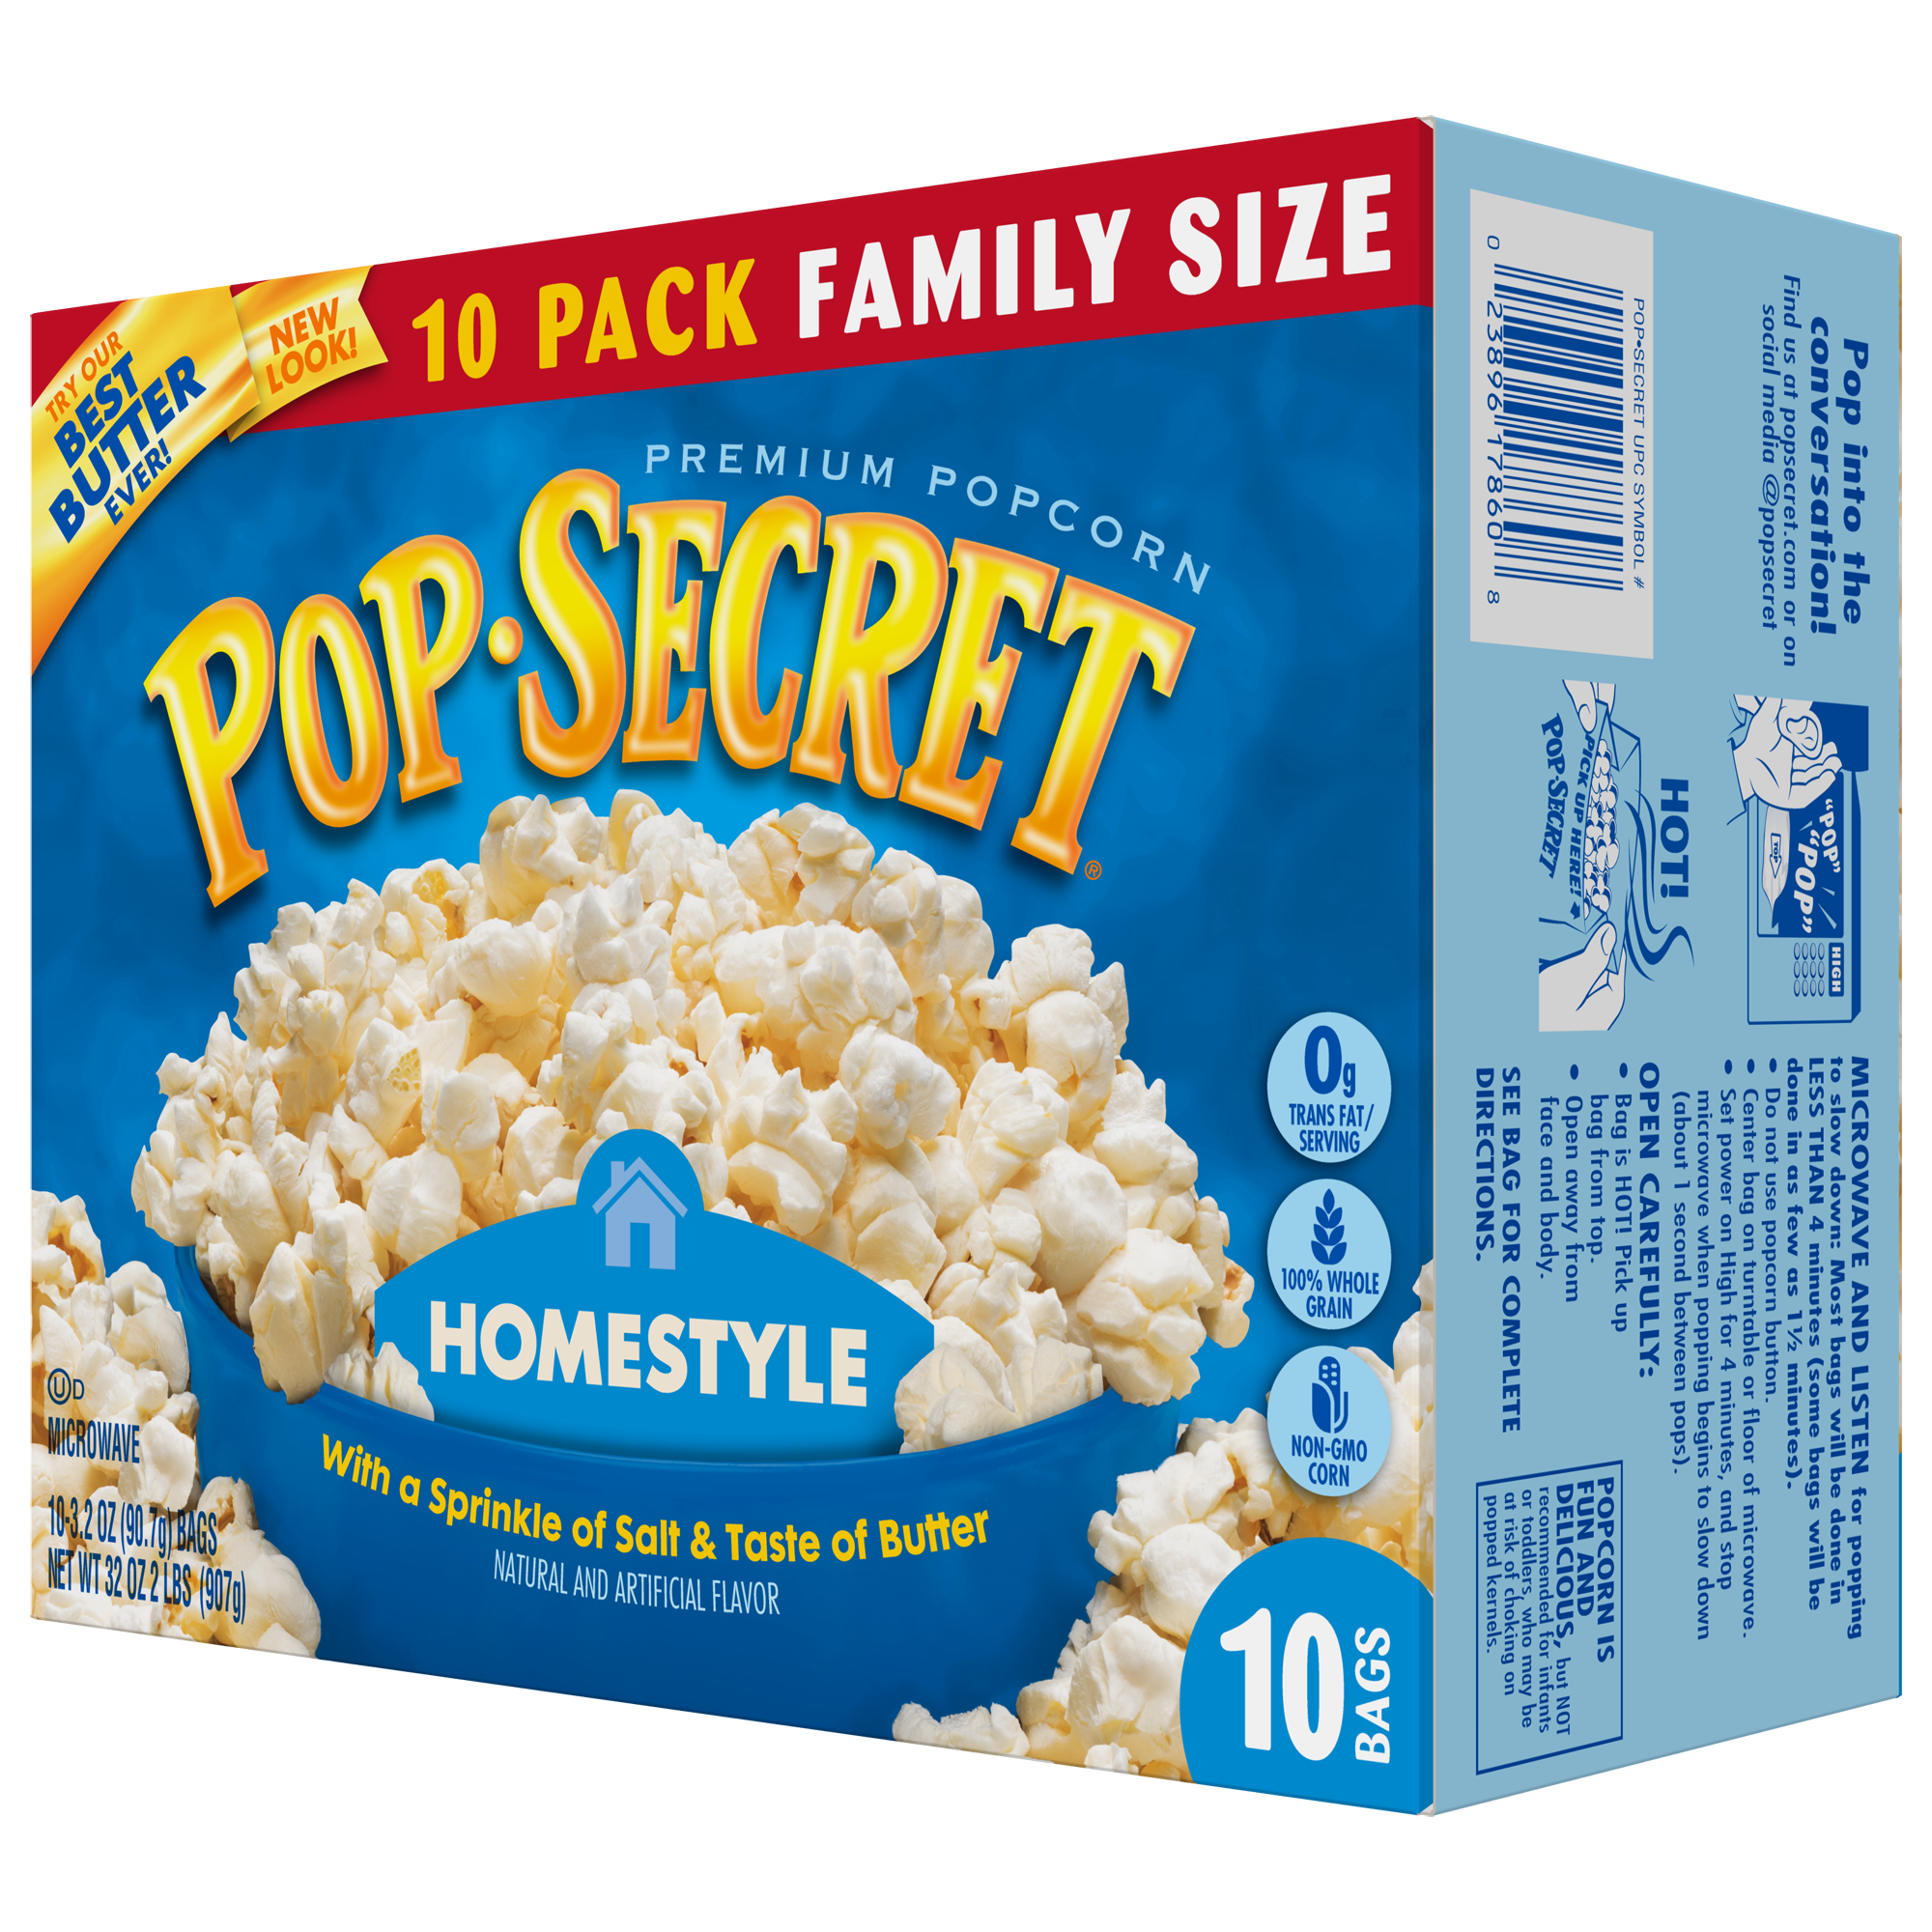 Pop Secret Homestyle Microwave Popcorn, 3.2 oz Bags, 10 Count Box ...